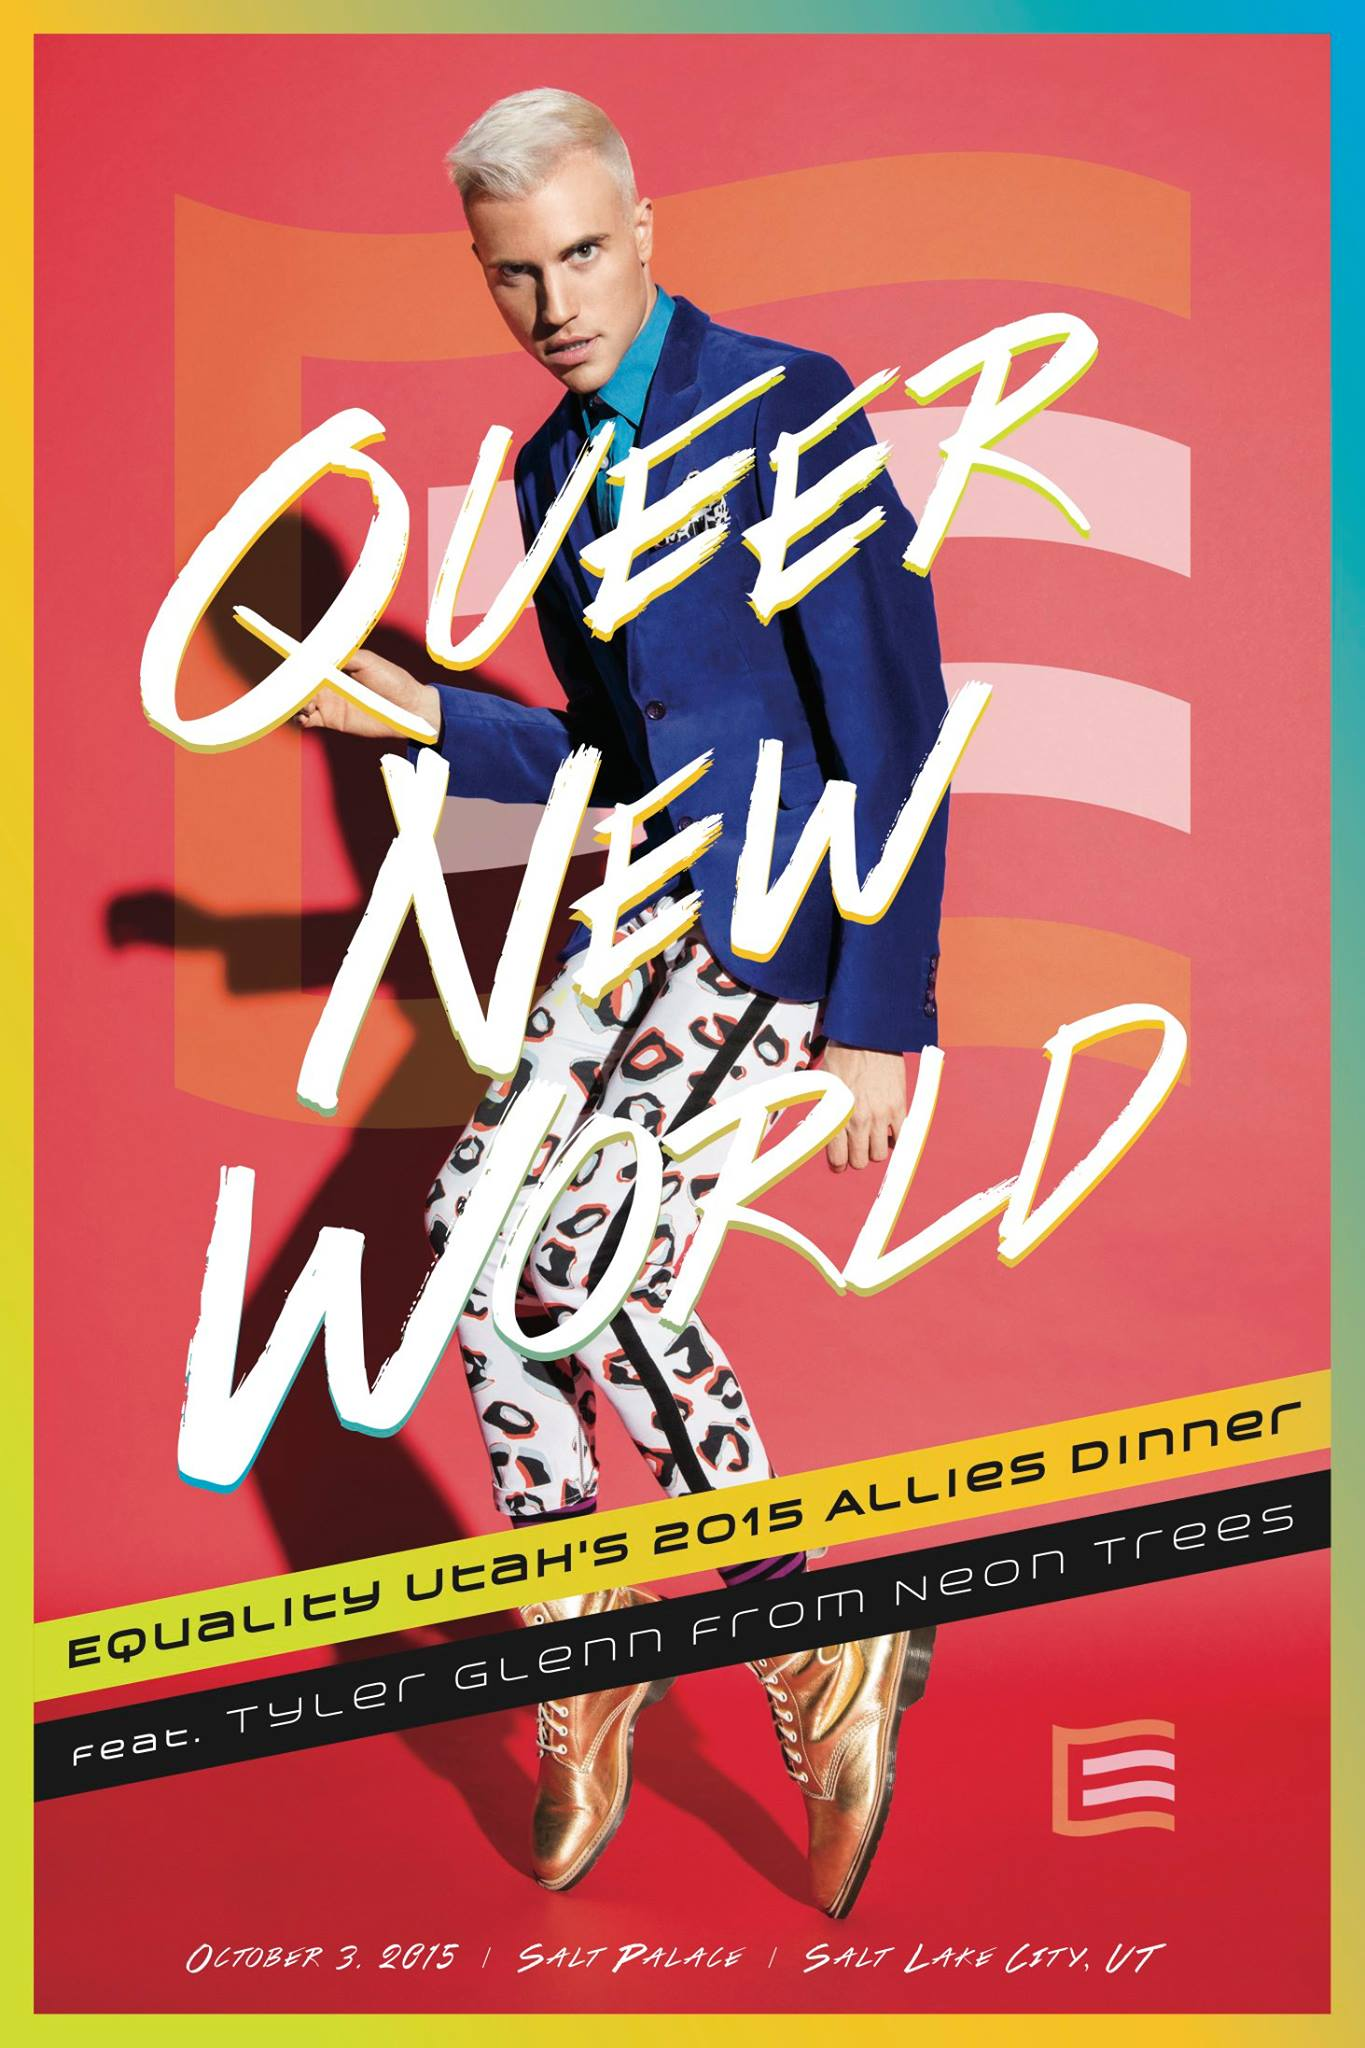 equality utah queer new world tyler glenn